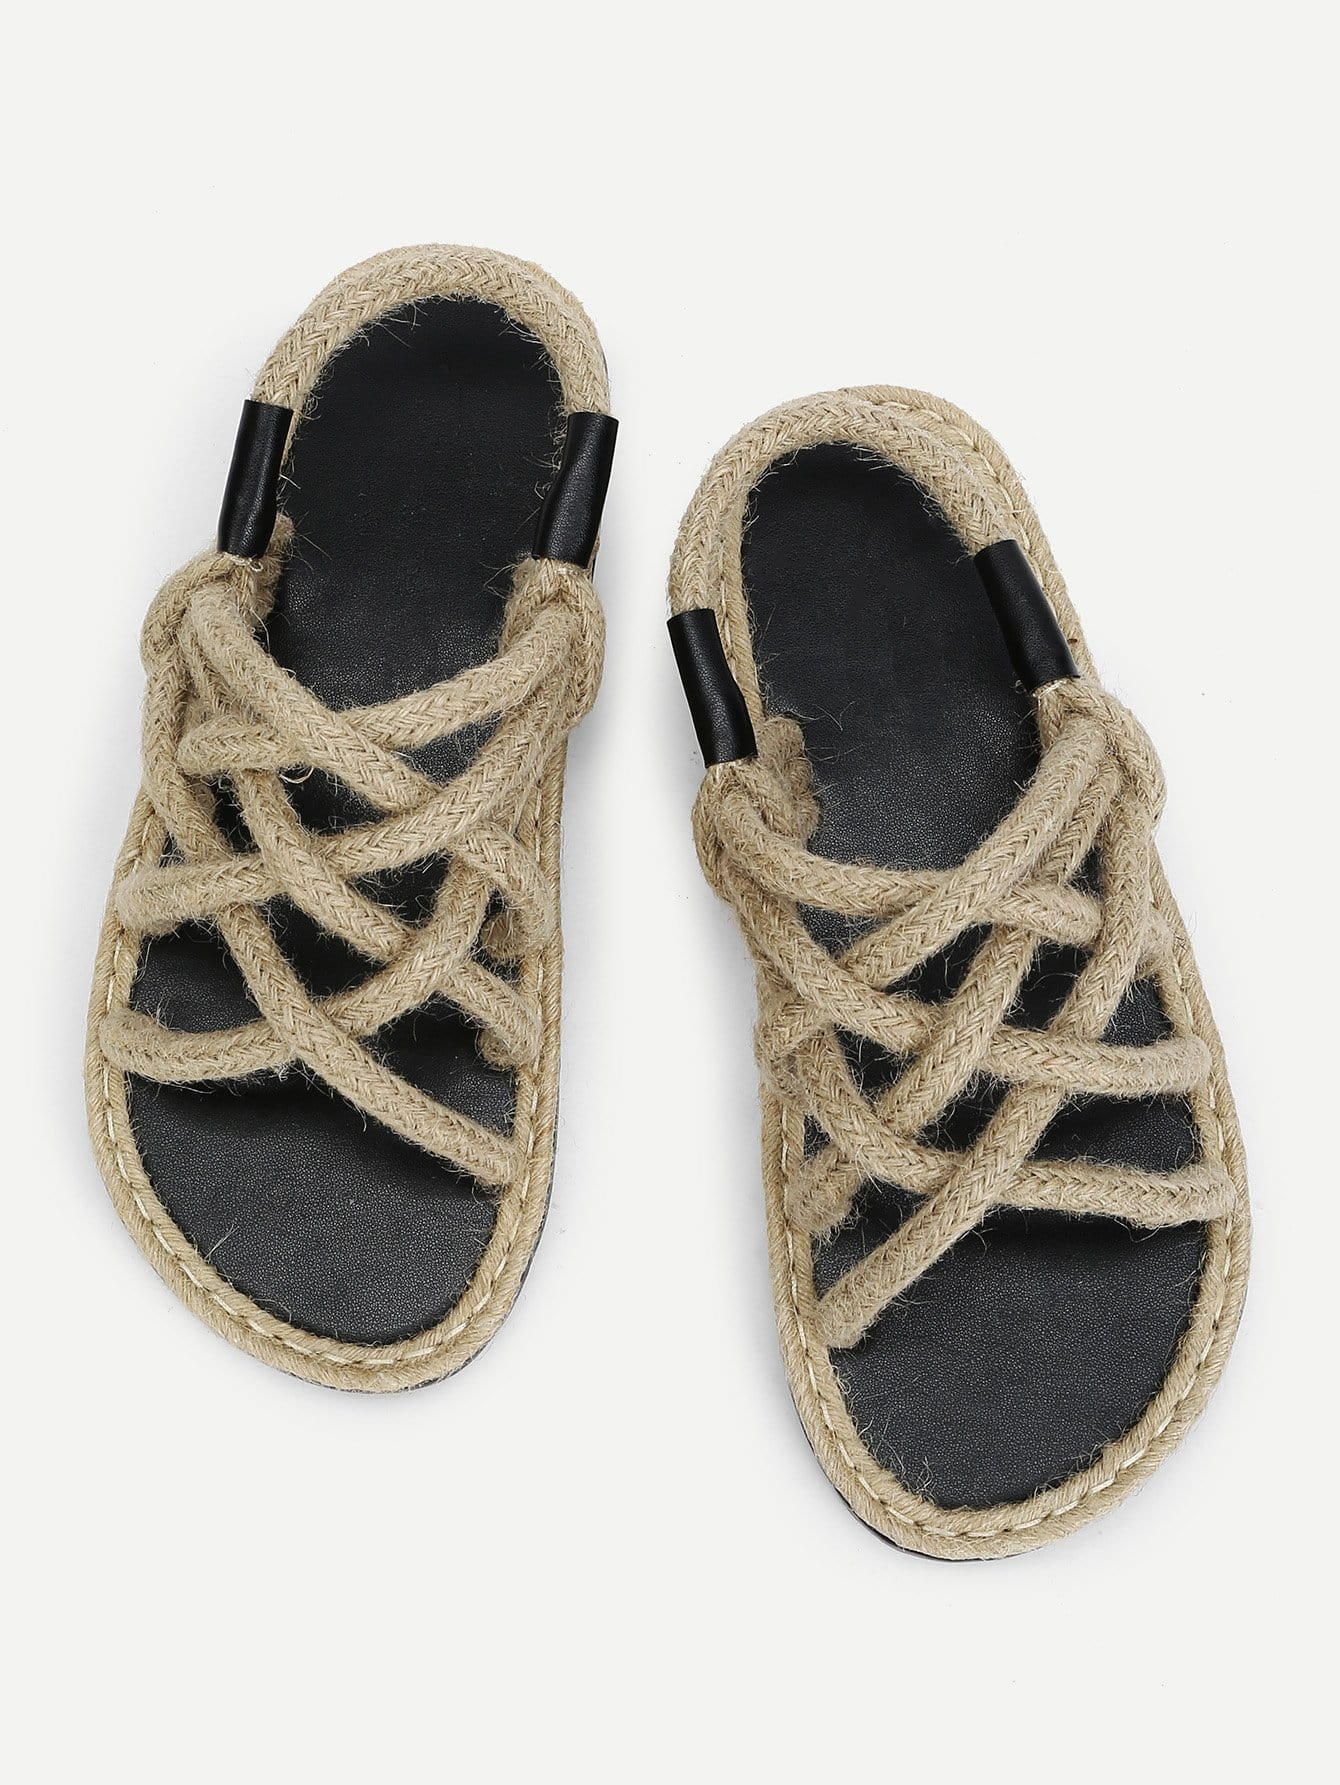 Woven Design Straw Flat Sandals woven design straw flat sandals